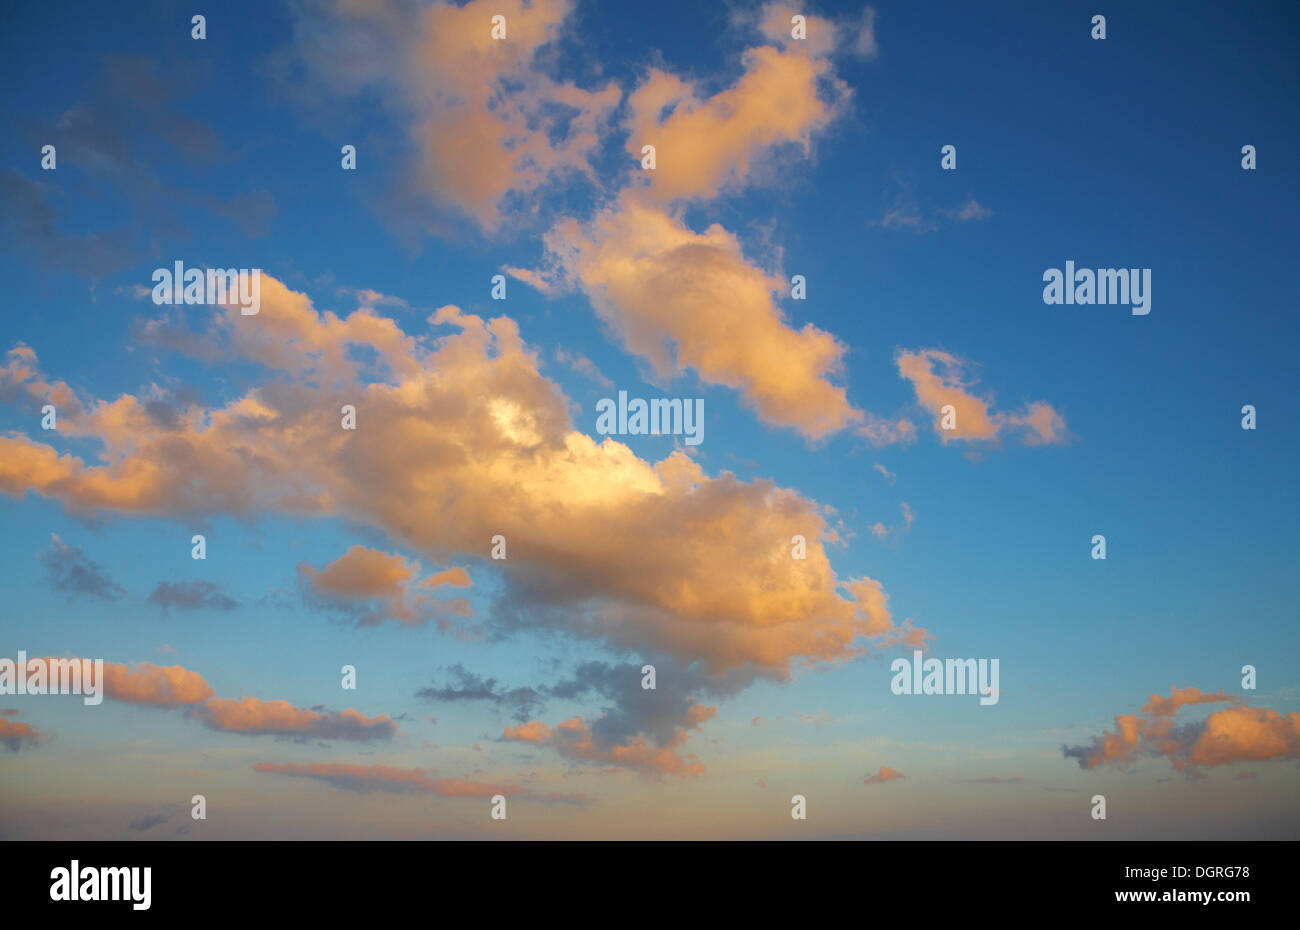 Blue sky with clouds in the evening light - Stock Image